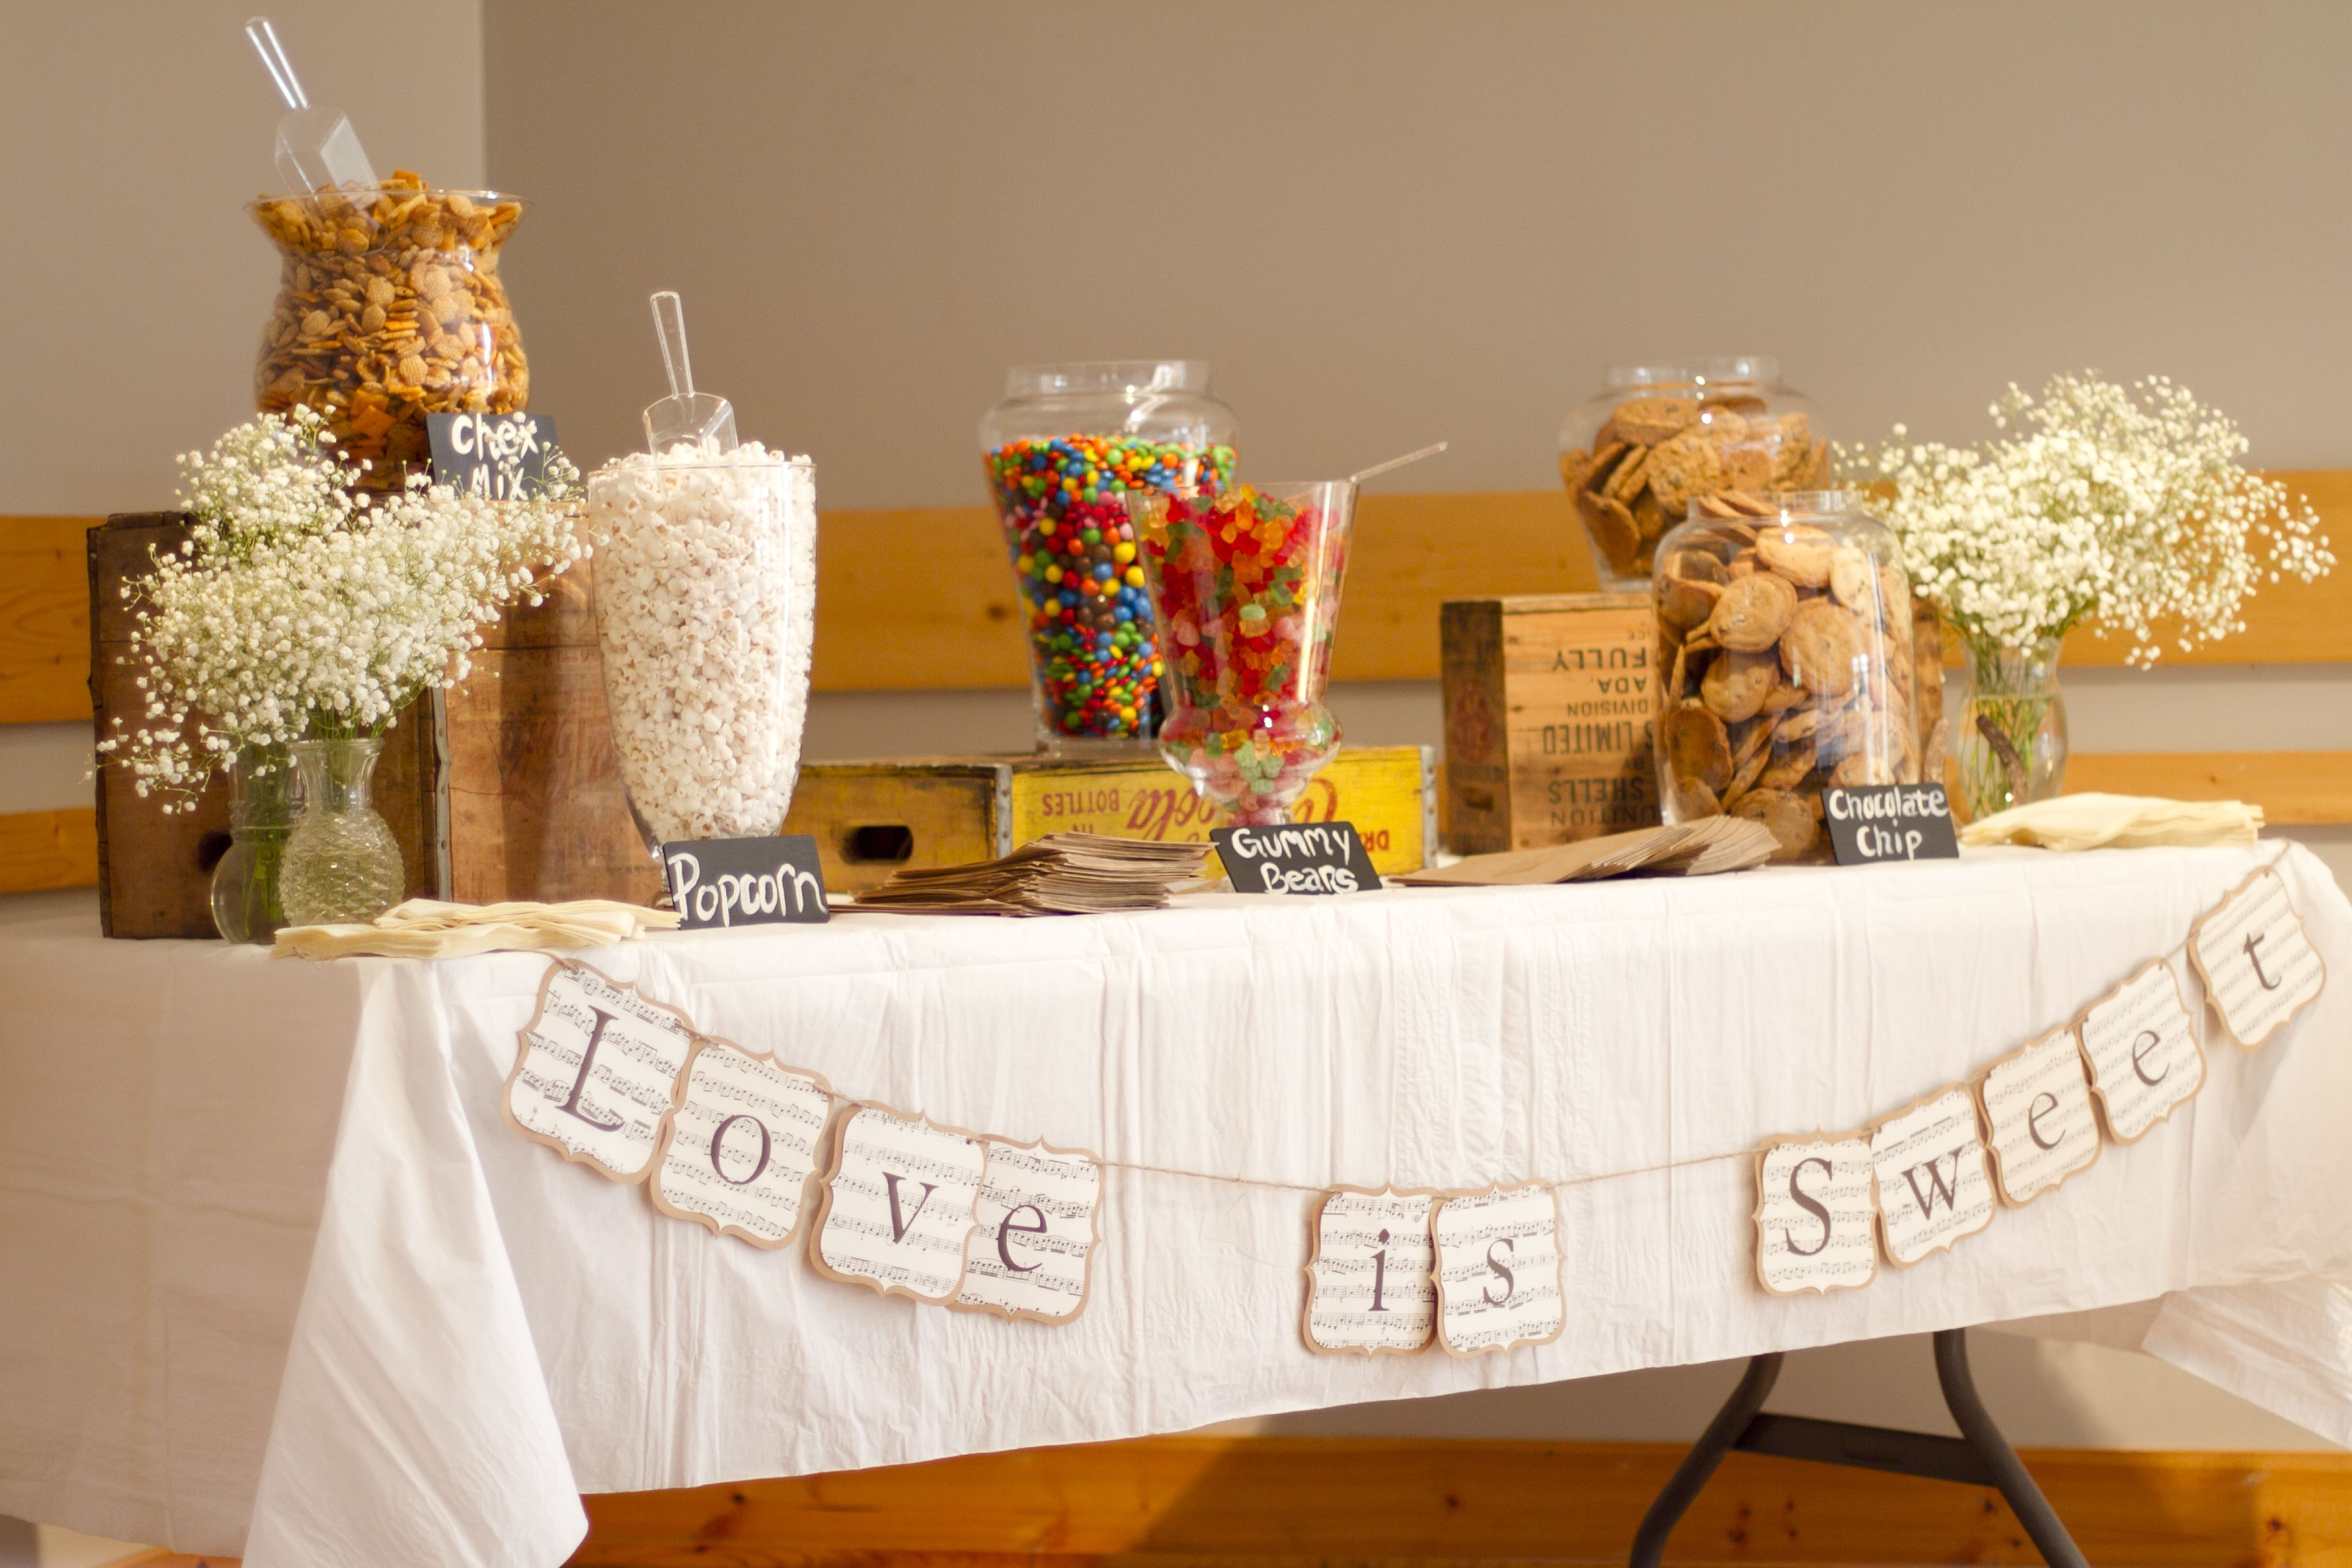 Wedding cake table decor ideas  Rustic Wedding Candy Bar for Zachary and Kayla  Lolly buffet